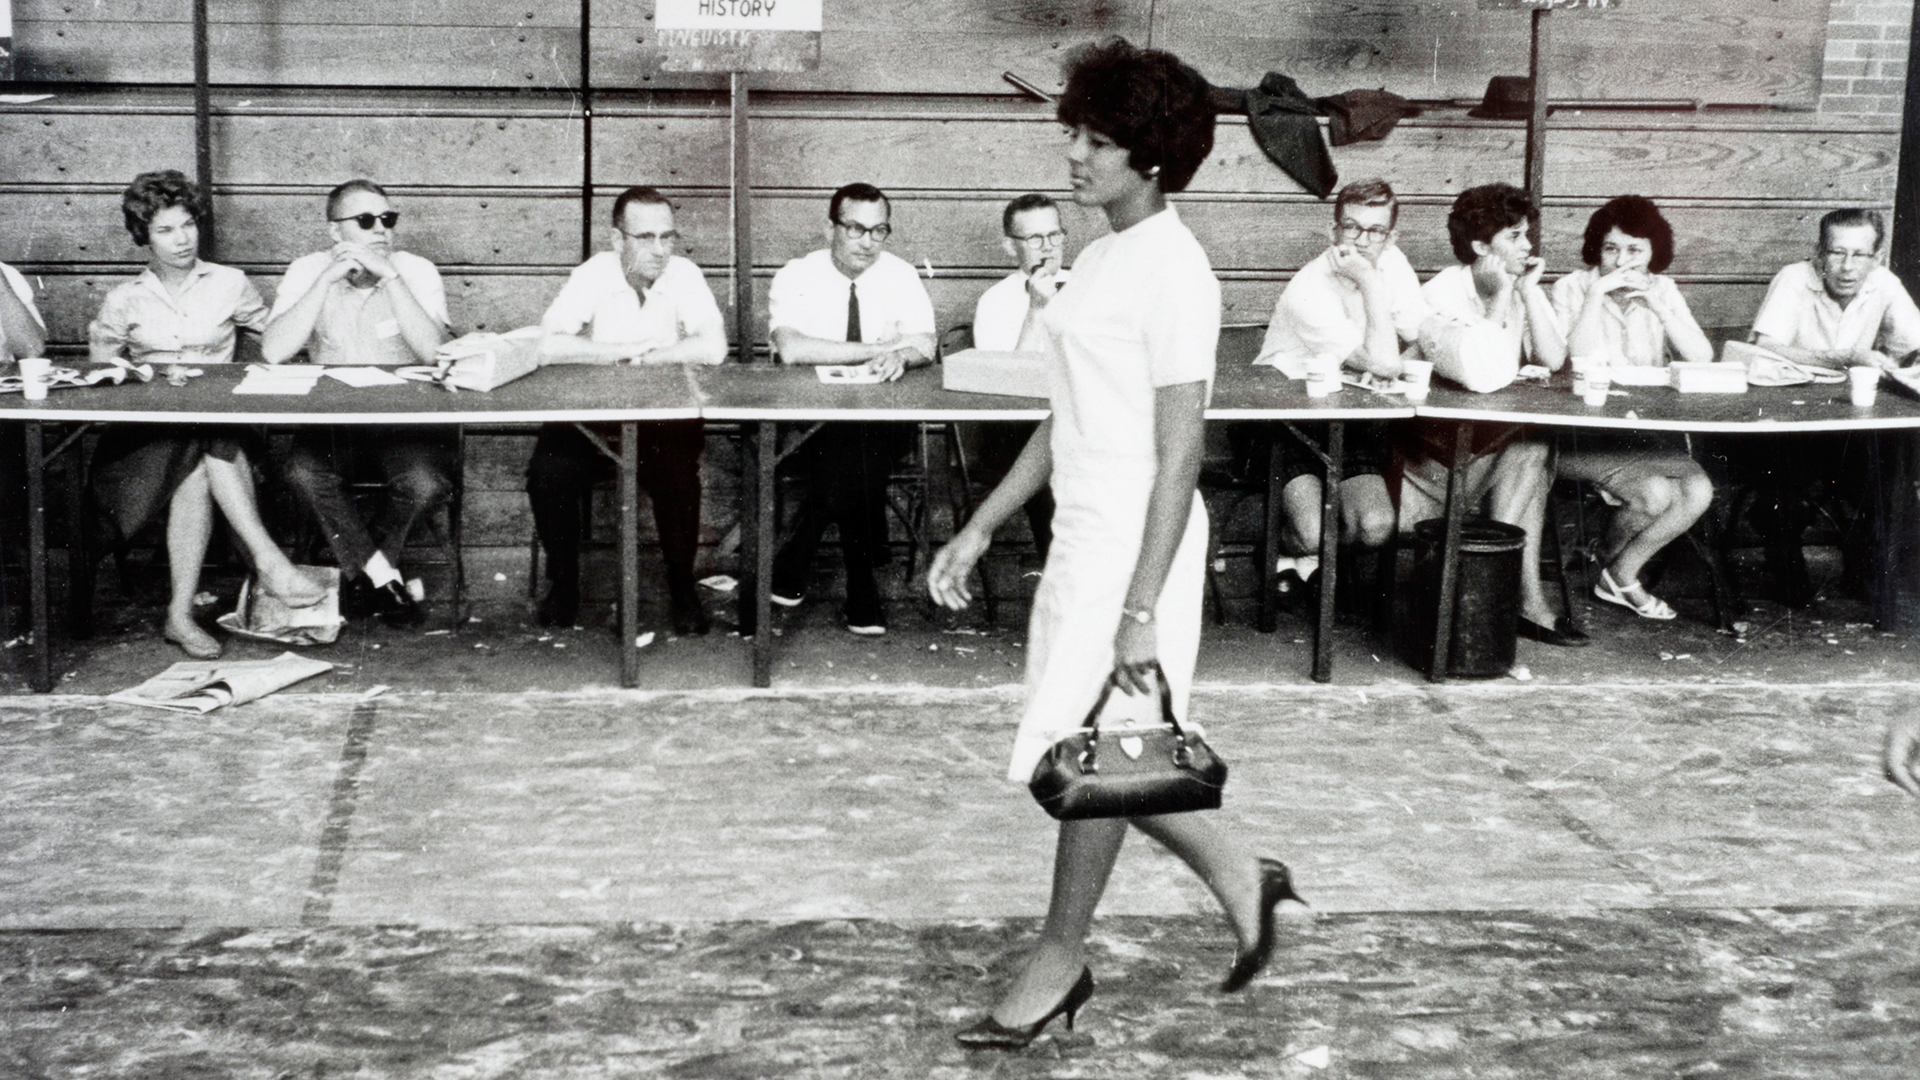 June 11, 1963: Vivian Malone Jones Became the First Black Woman to Register at the University of Alabama